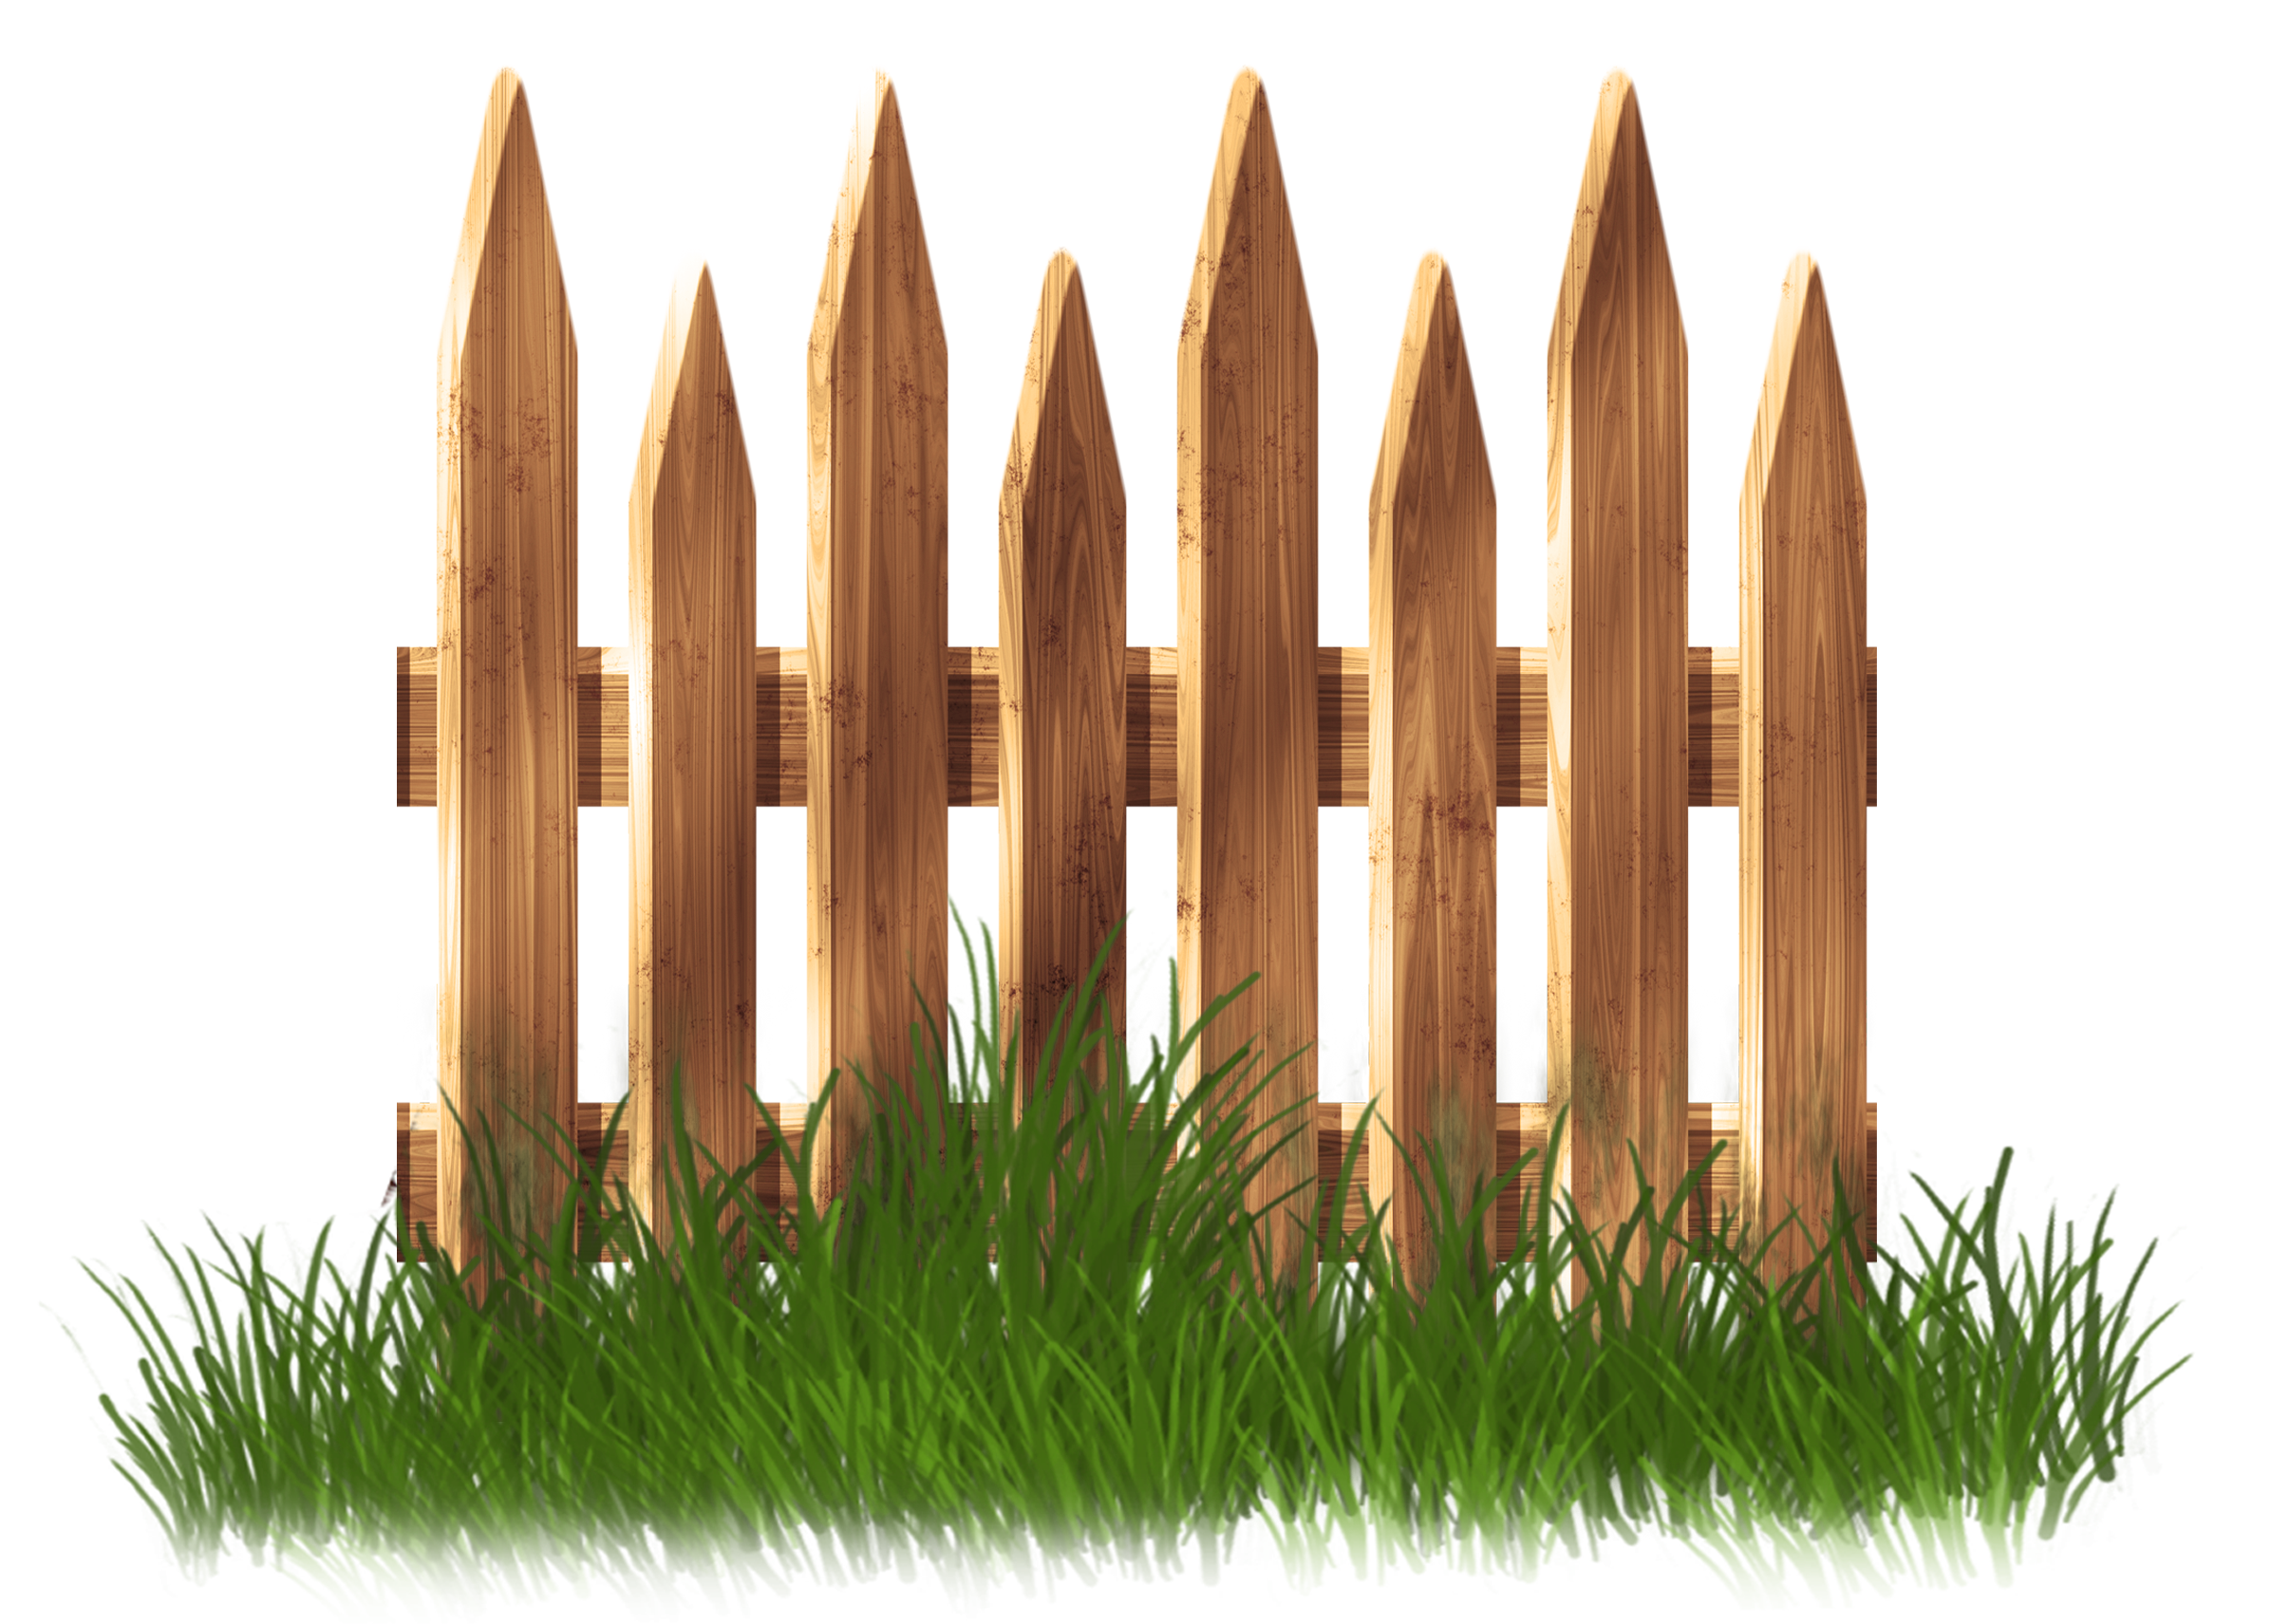 Garden background png. Transparent wooden fence with